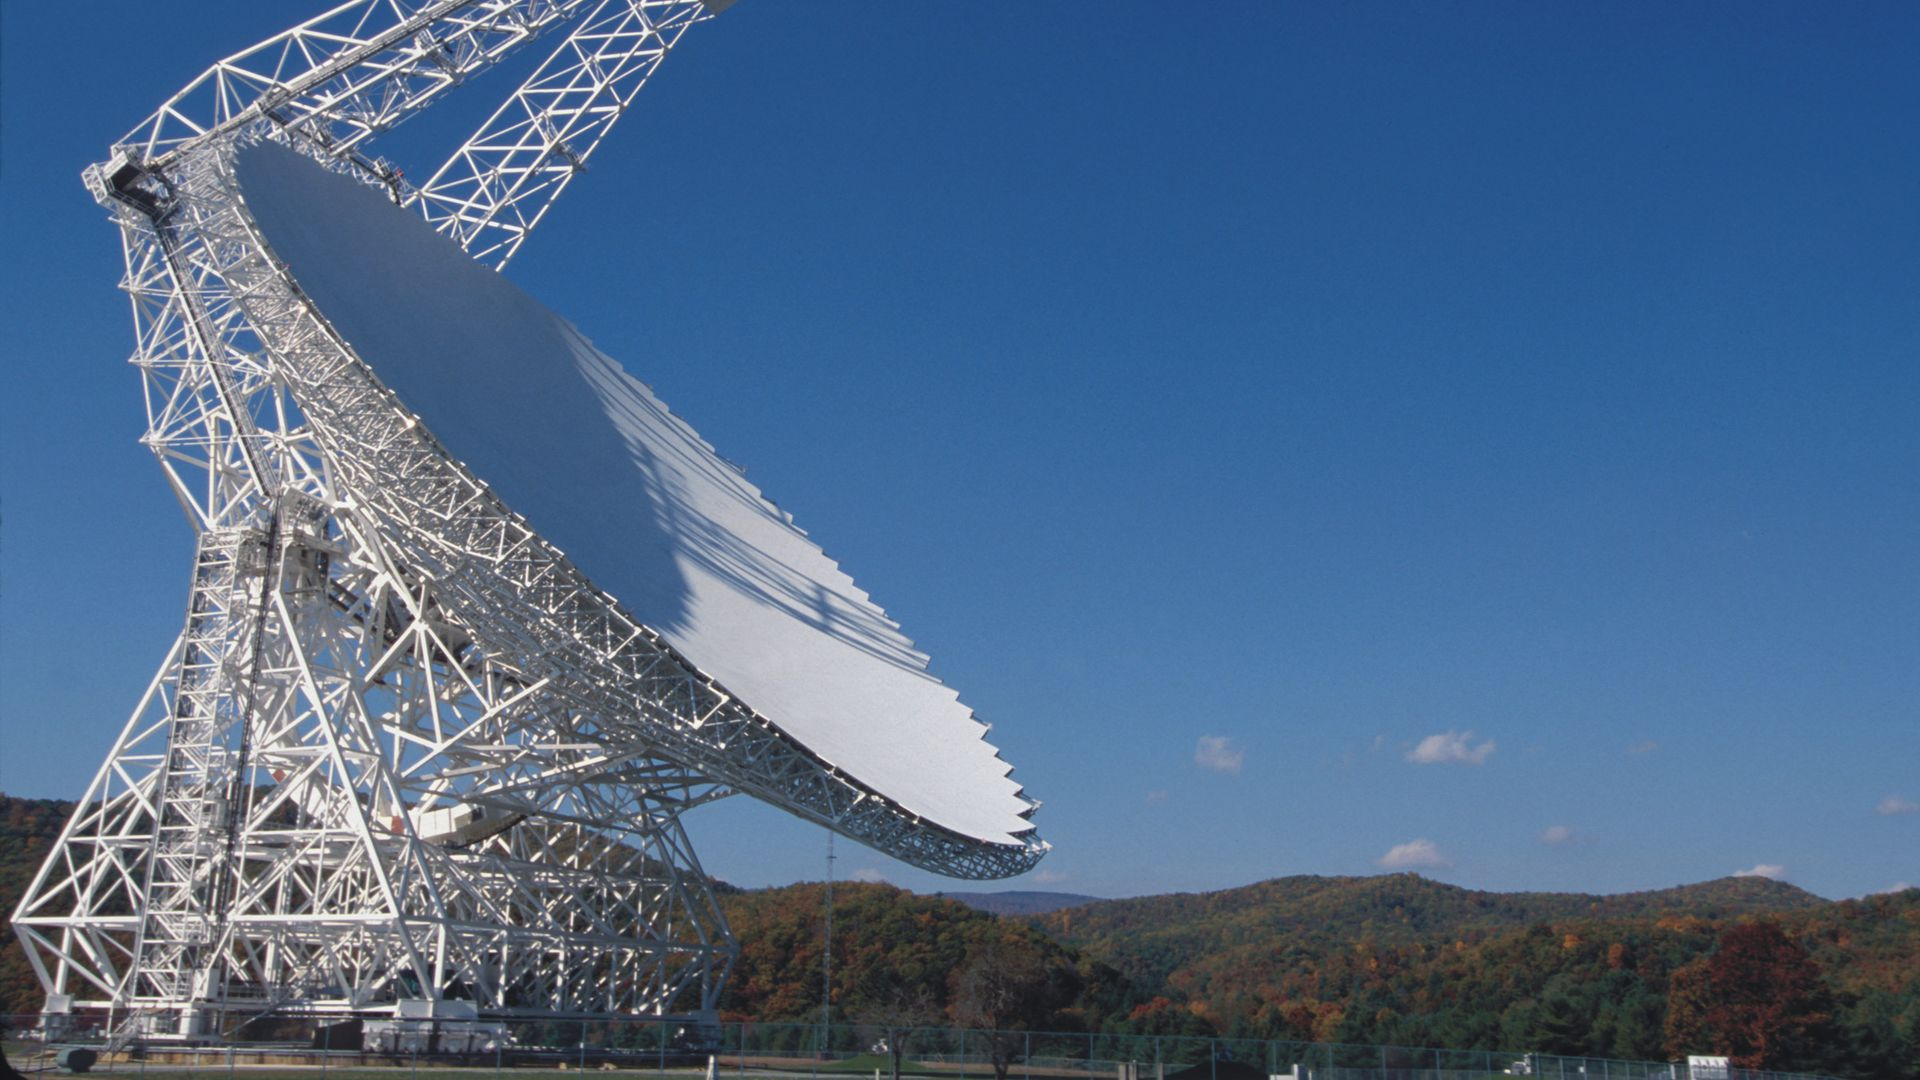 The Green Bank Telescope in West Virginia monitored fast radio burst (FRB) 121102.